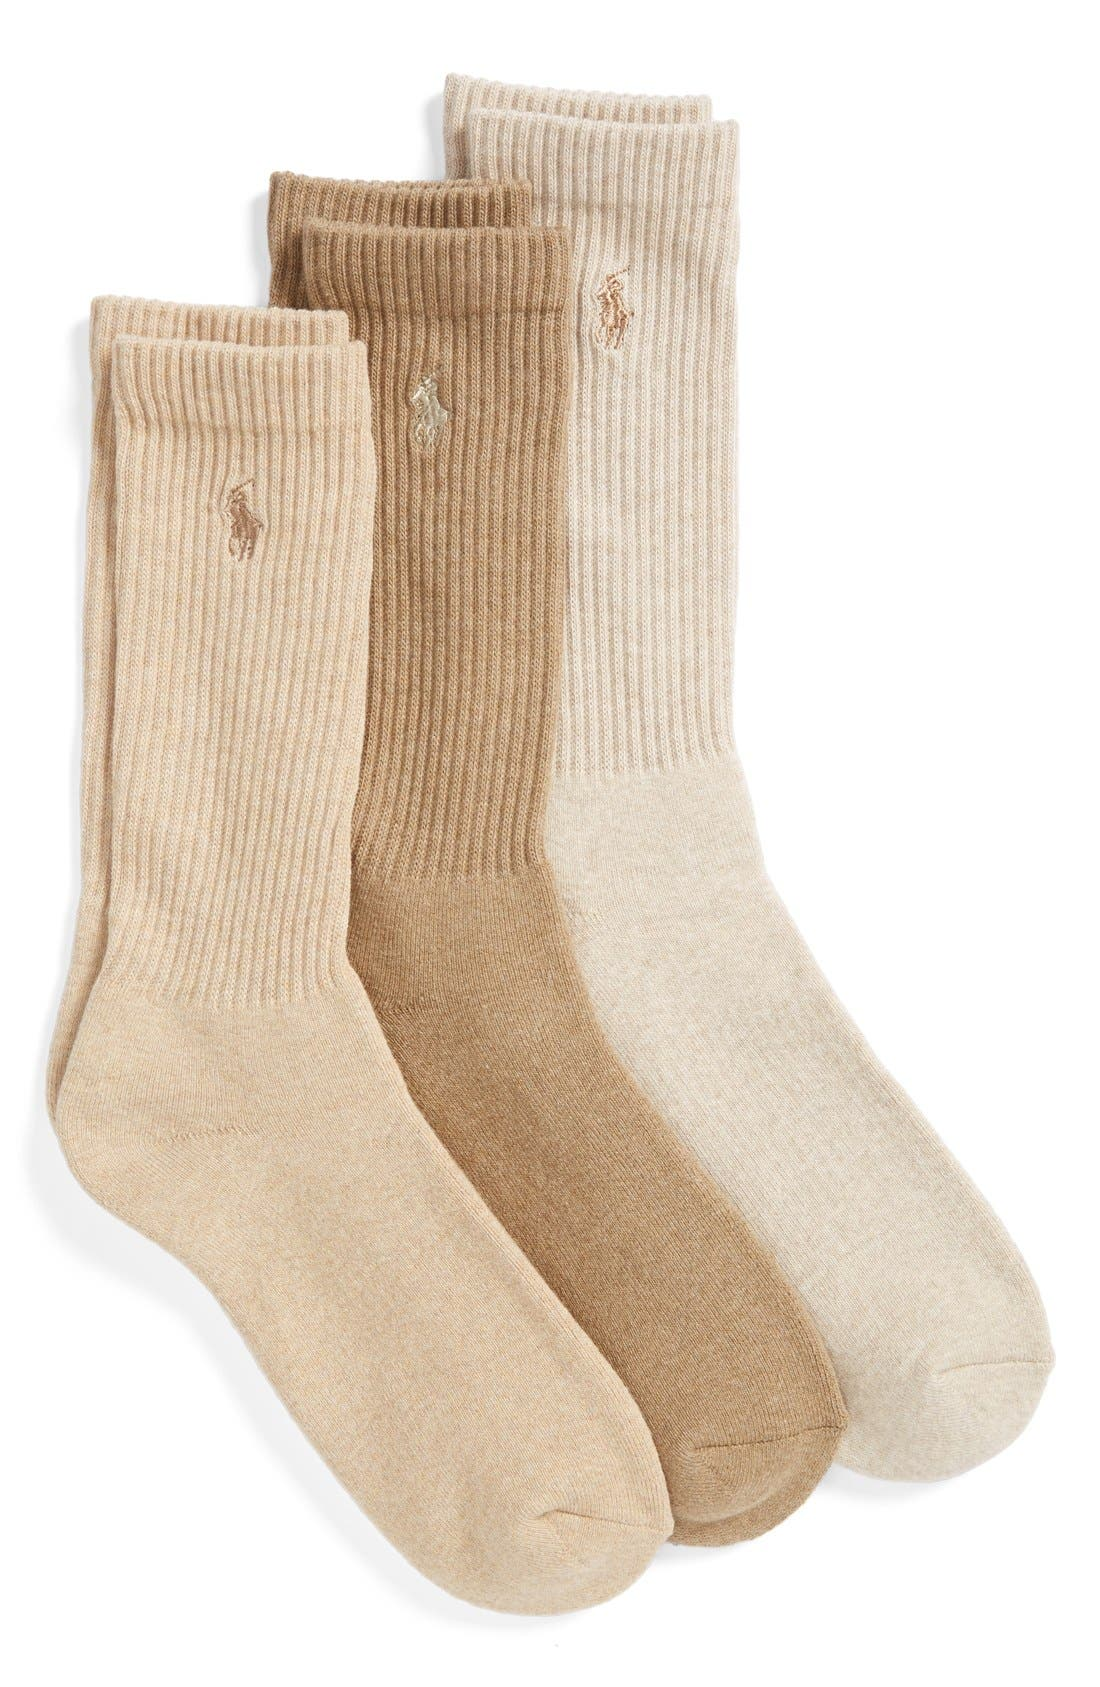 3-Pack Crew Socks,                         Main,                         color, TAUPE/ OYSTER/ BEIGE